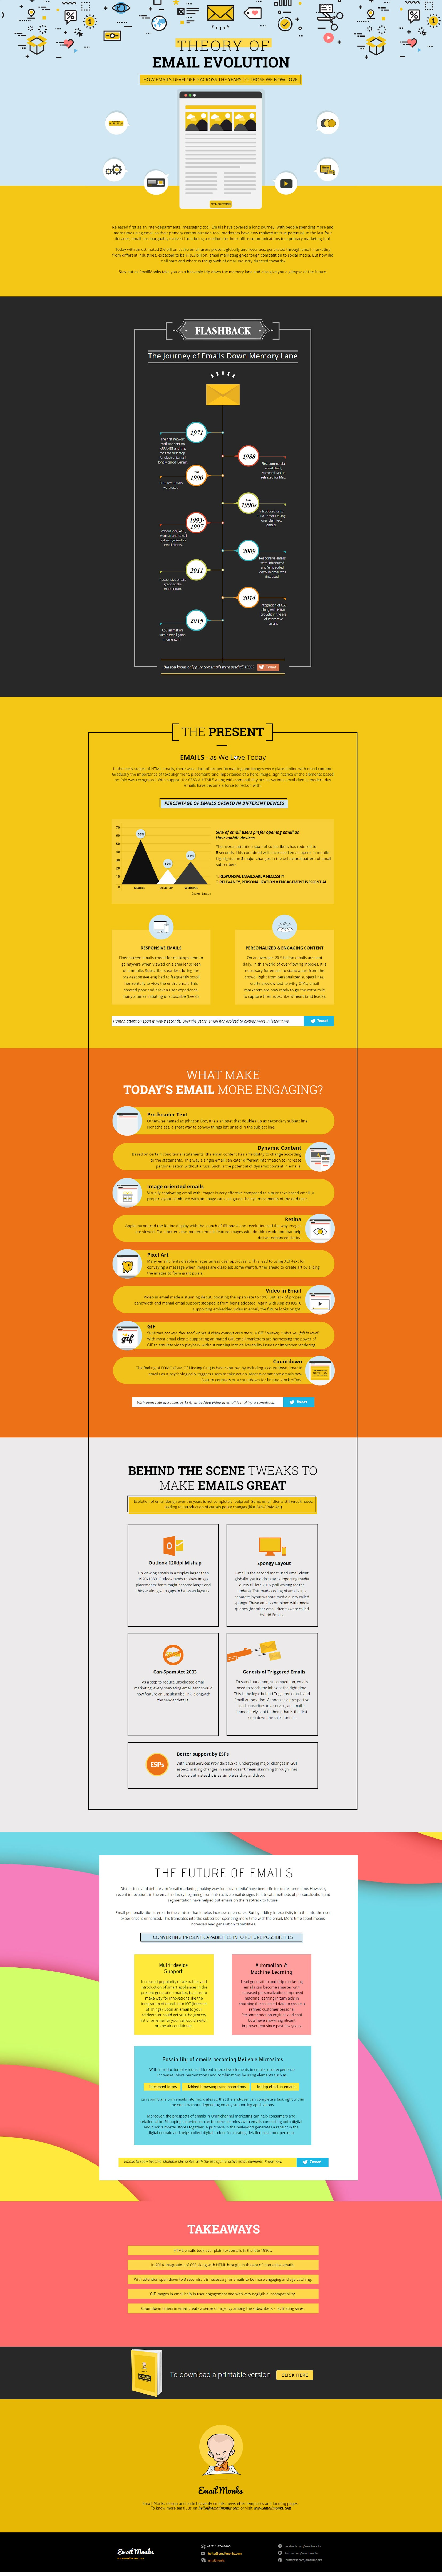 The Theory of Email Evolution - #Infographic